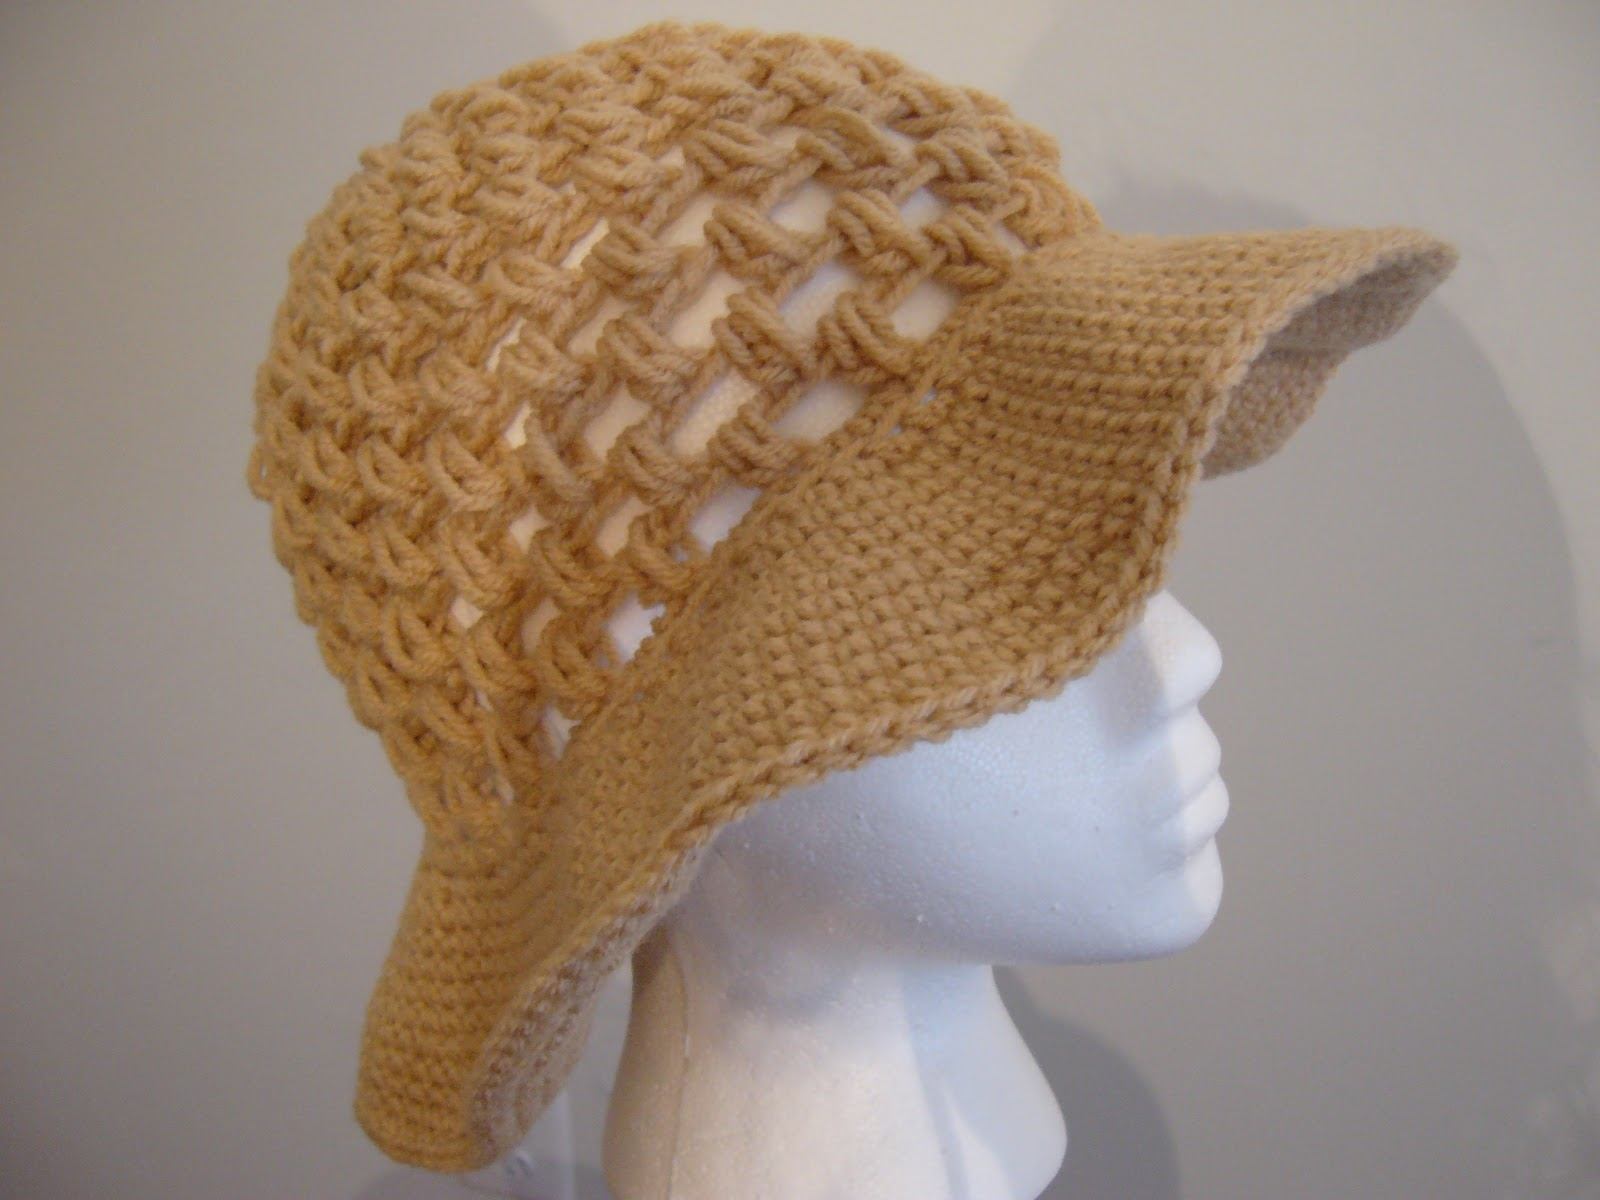 Free Crochet Hat Patterns : Crochet Indian Summer Hat - Knitting Patterns and Crochet Patterns